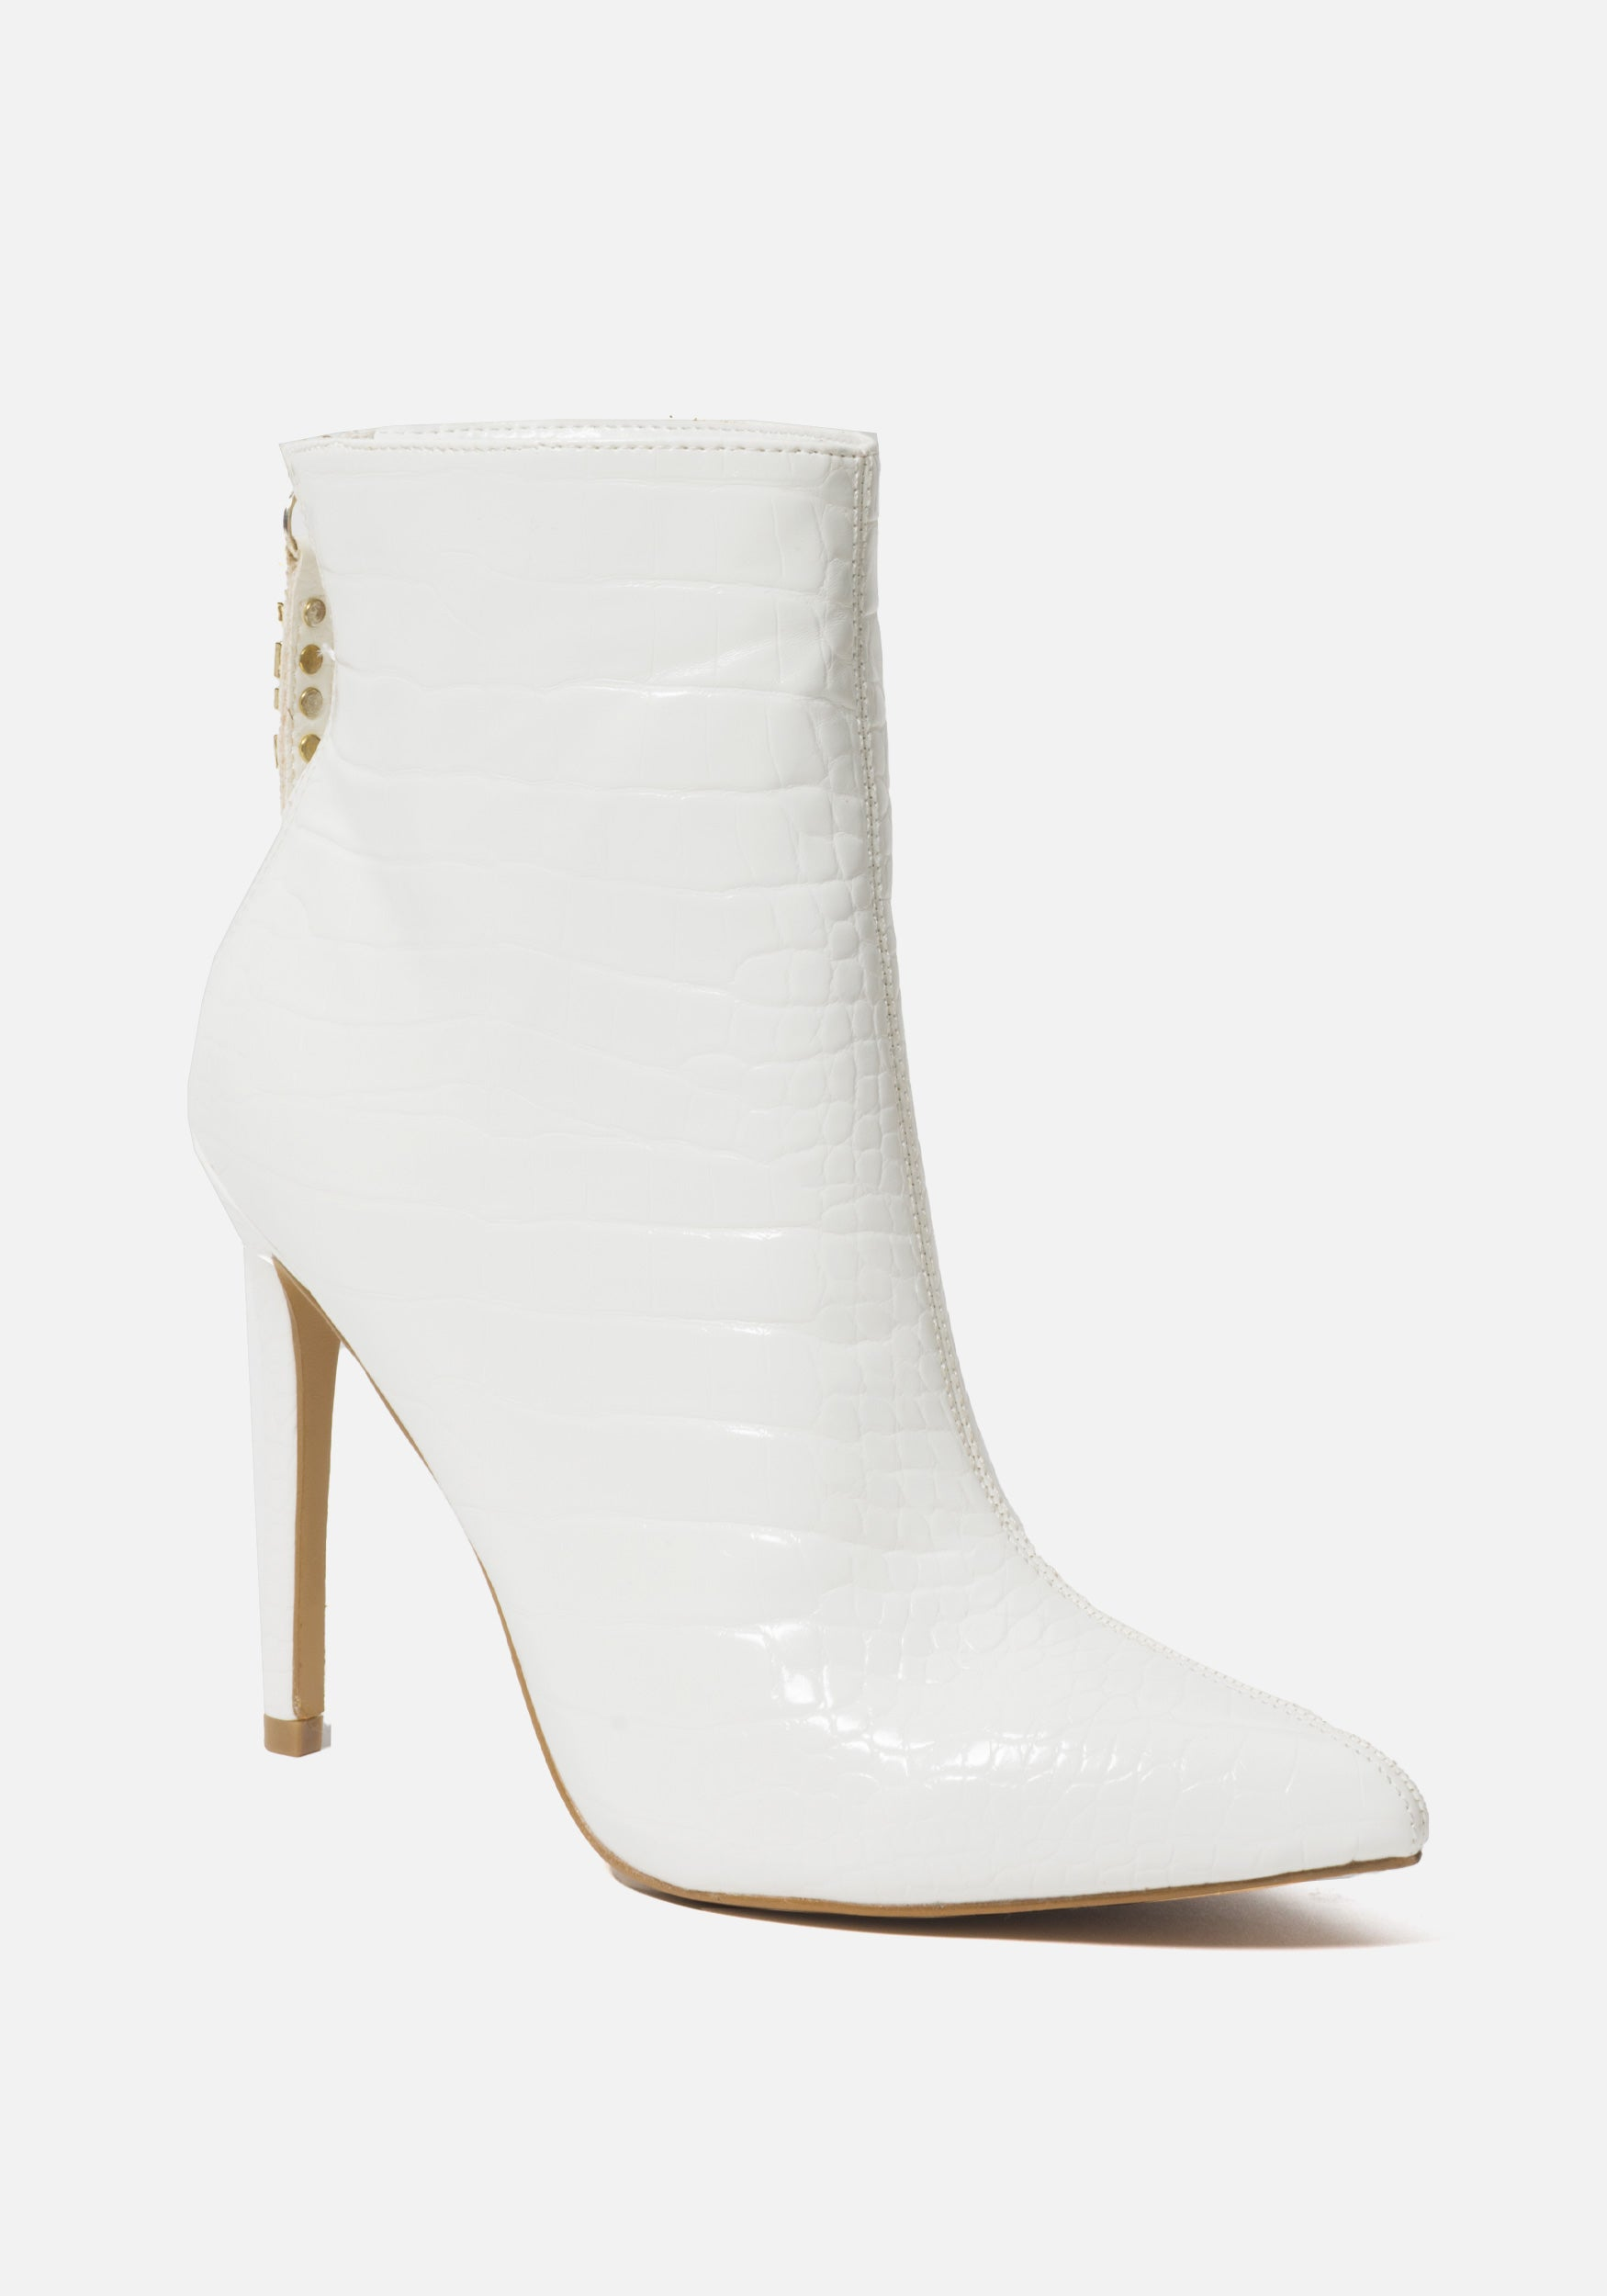 Bebe Women's Dasha Stiletto Booties, Size 6 in WHITE CROC FAUX Synthetic